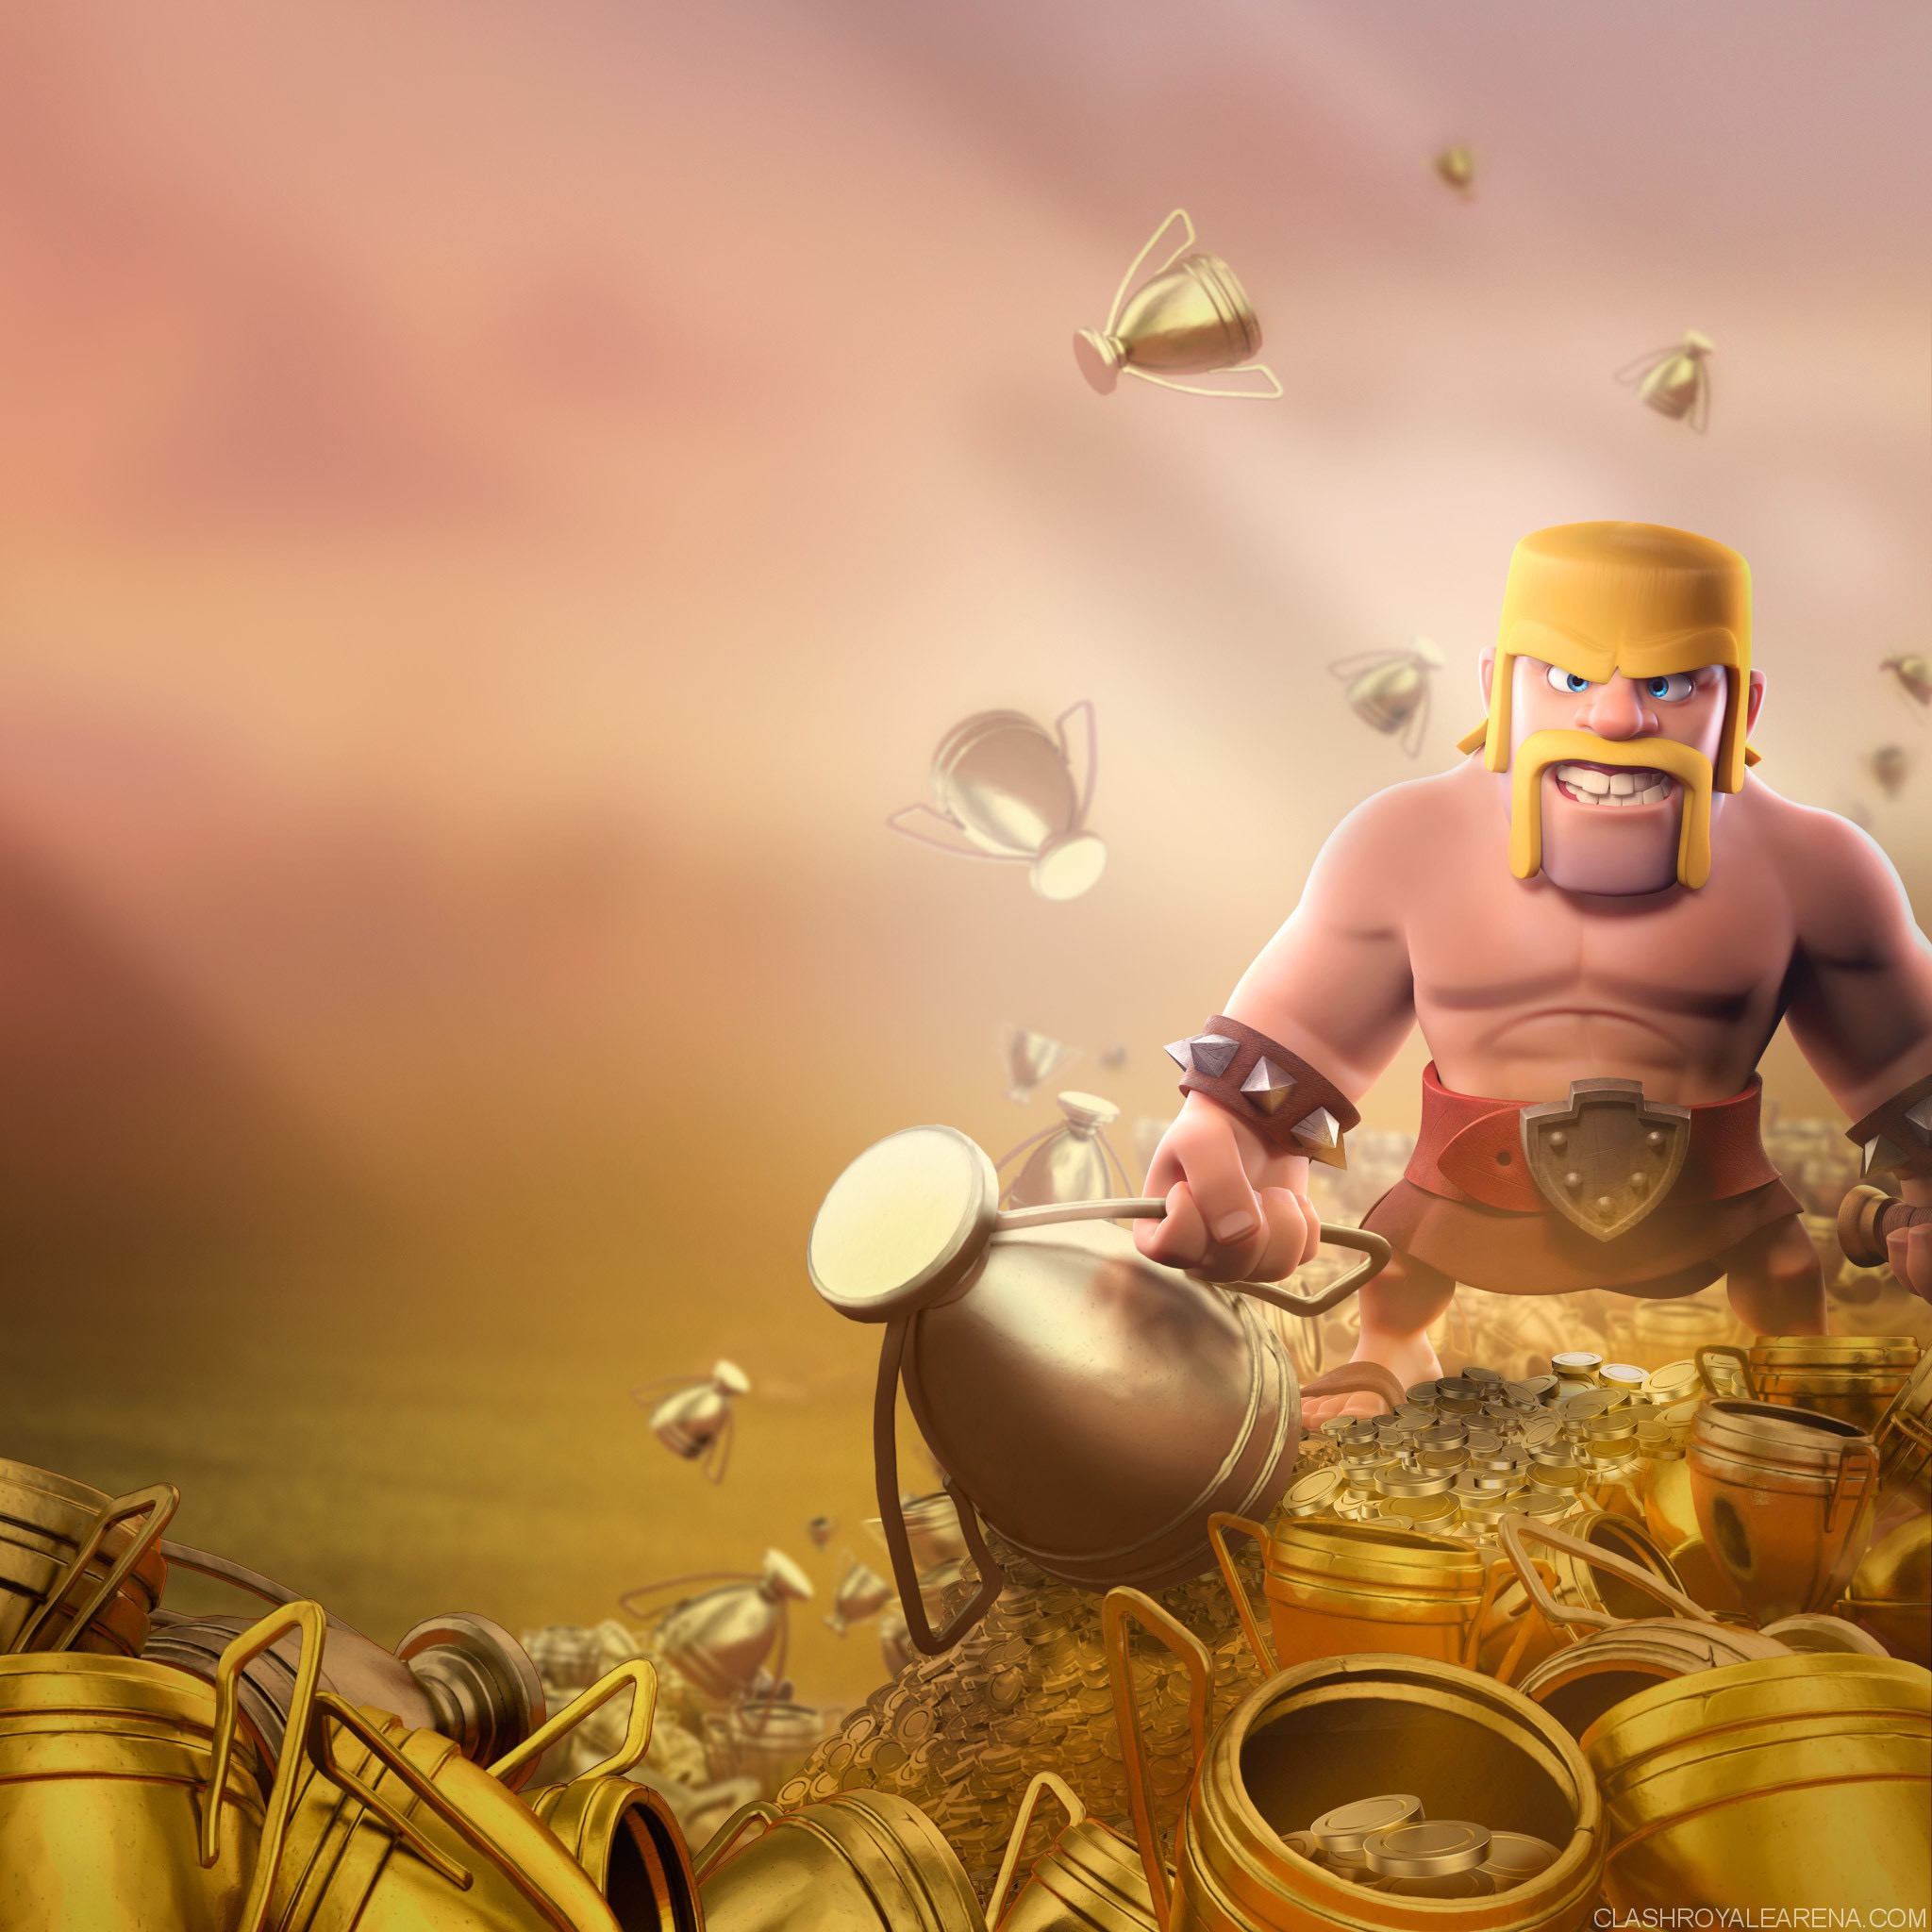 Wallpaper Clash Of Clans 3d Barbarian Clash Of Clans Hd Hd Games 4k Wallpapers